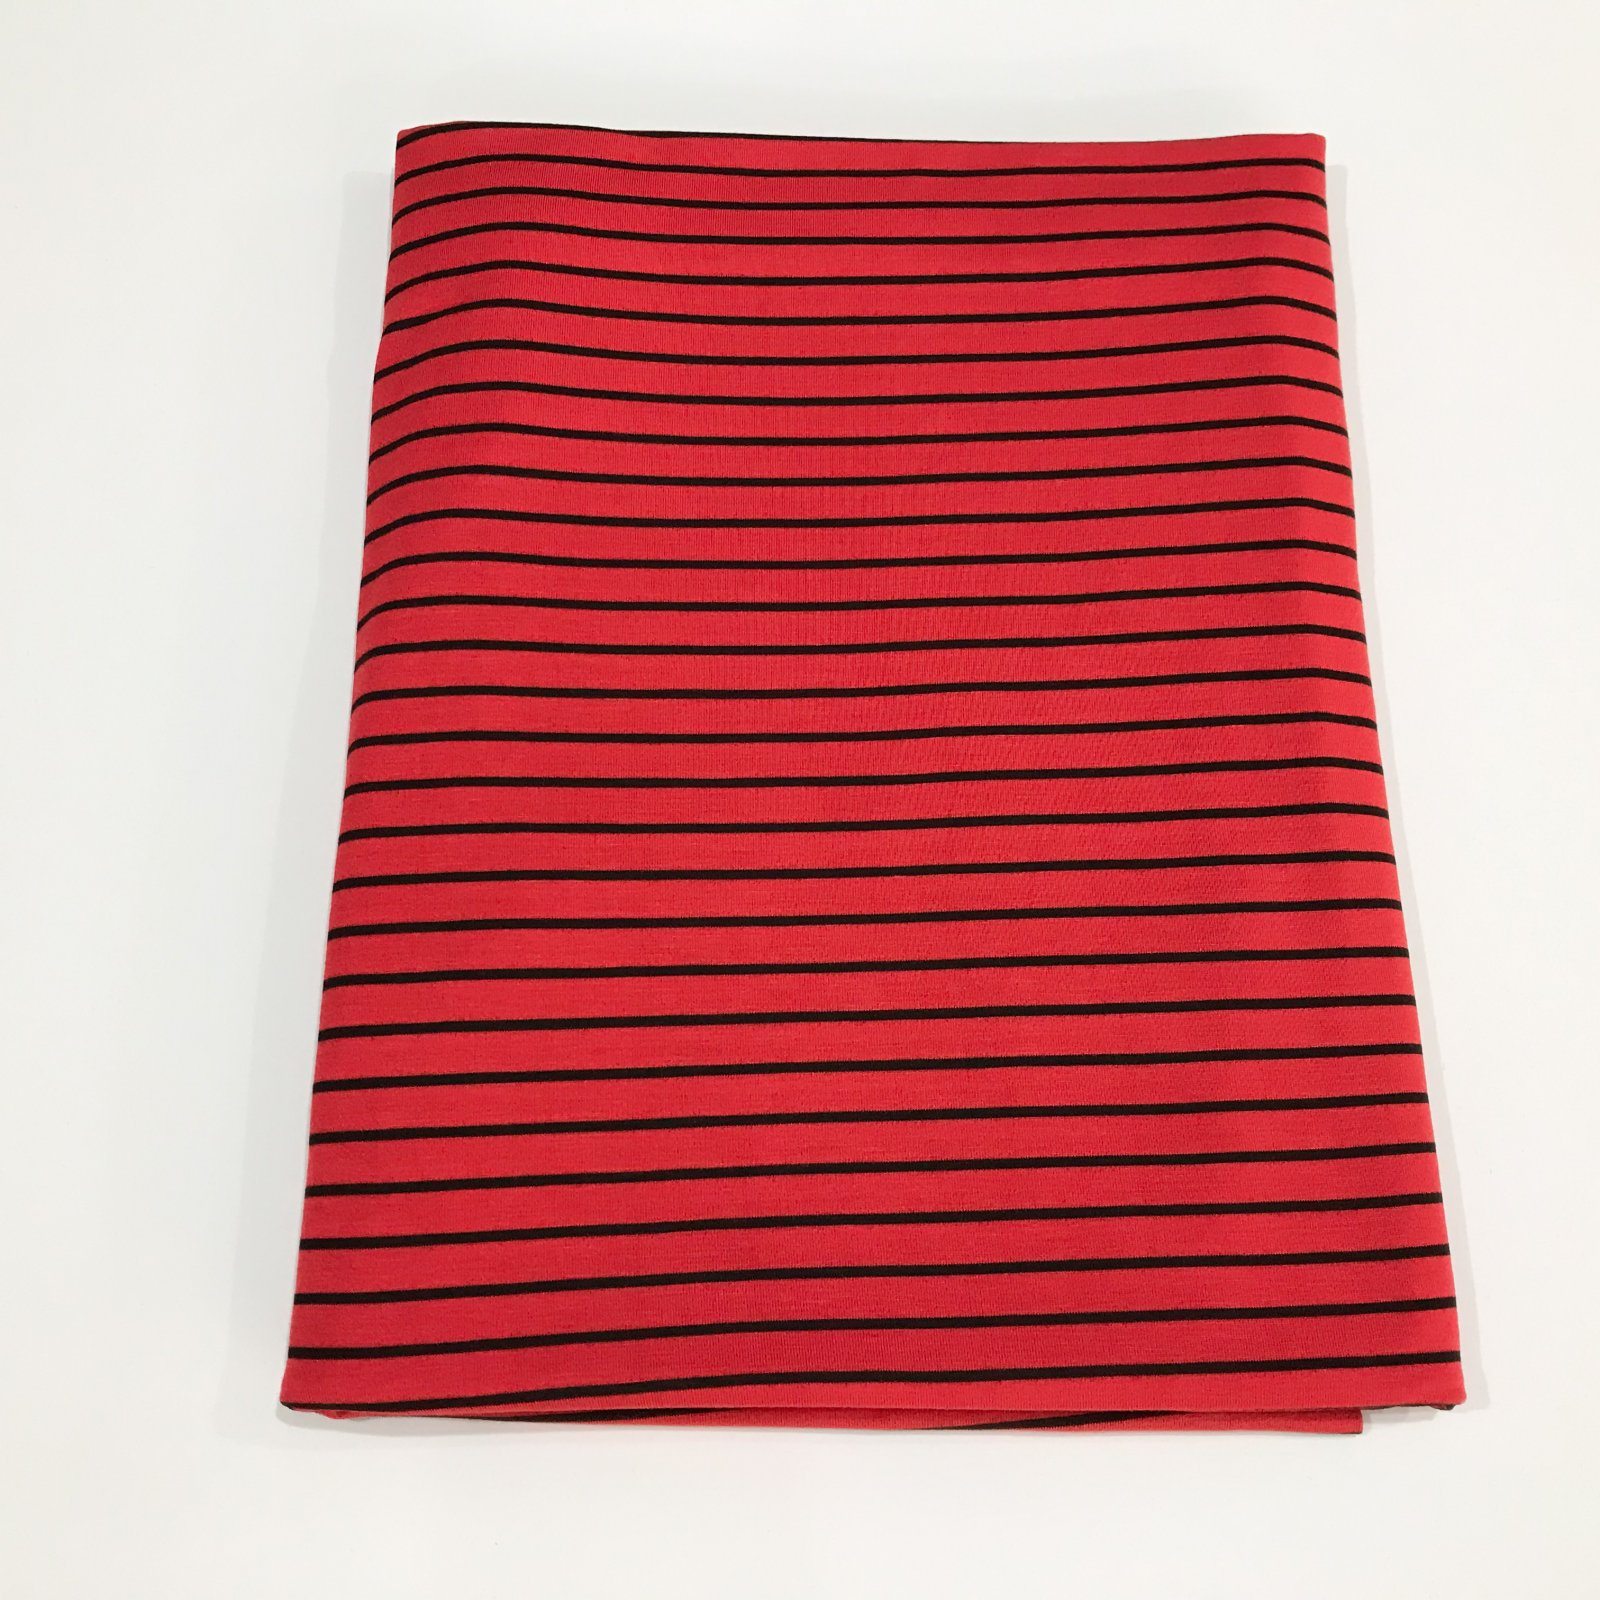 1 1/2 yards - Bamboo Stripe - Red and Black